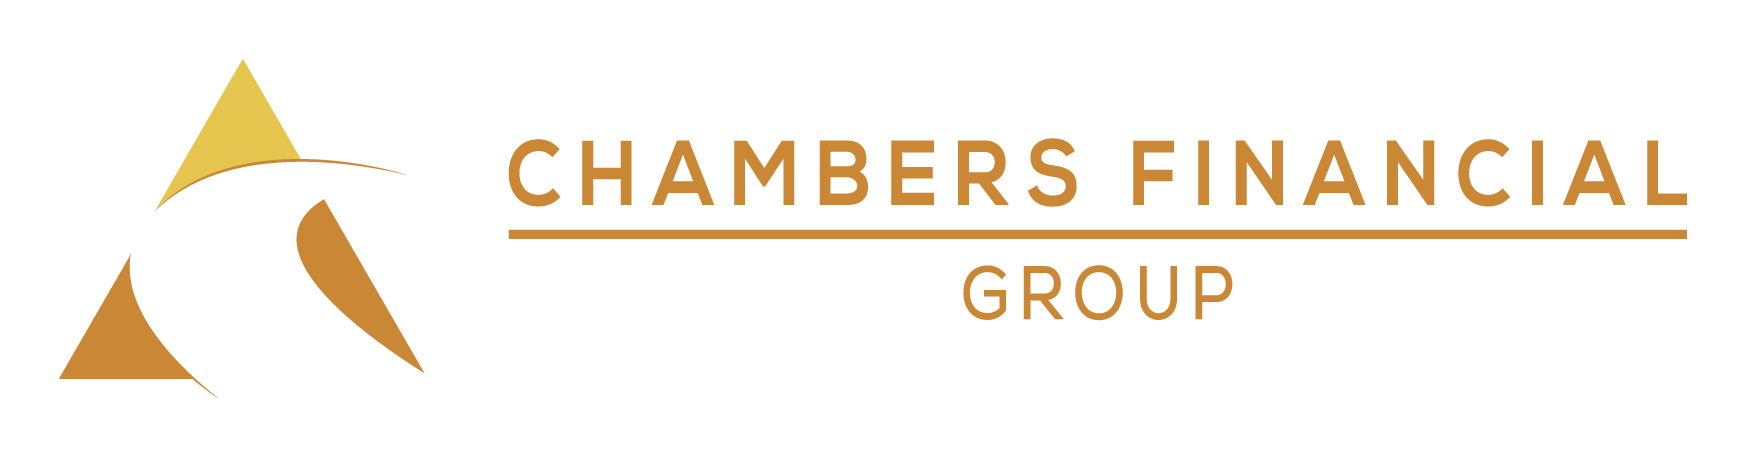 Chambers Financial Group | Largo FL | Investments